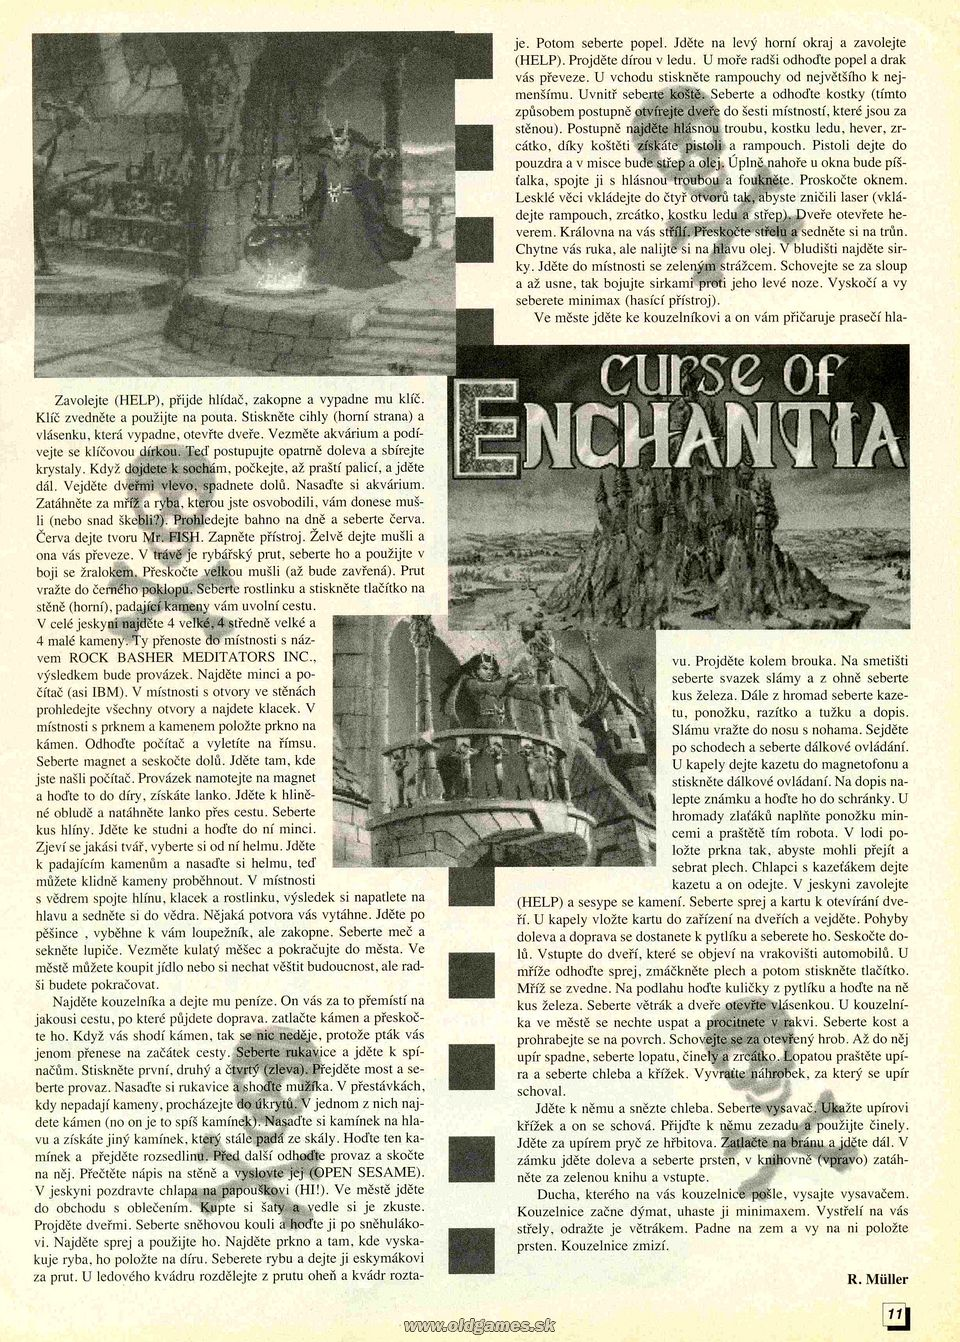 Curse of Enchantia, Návod